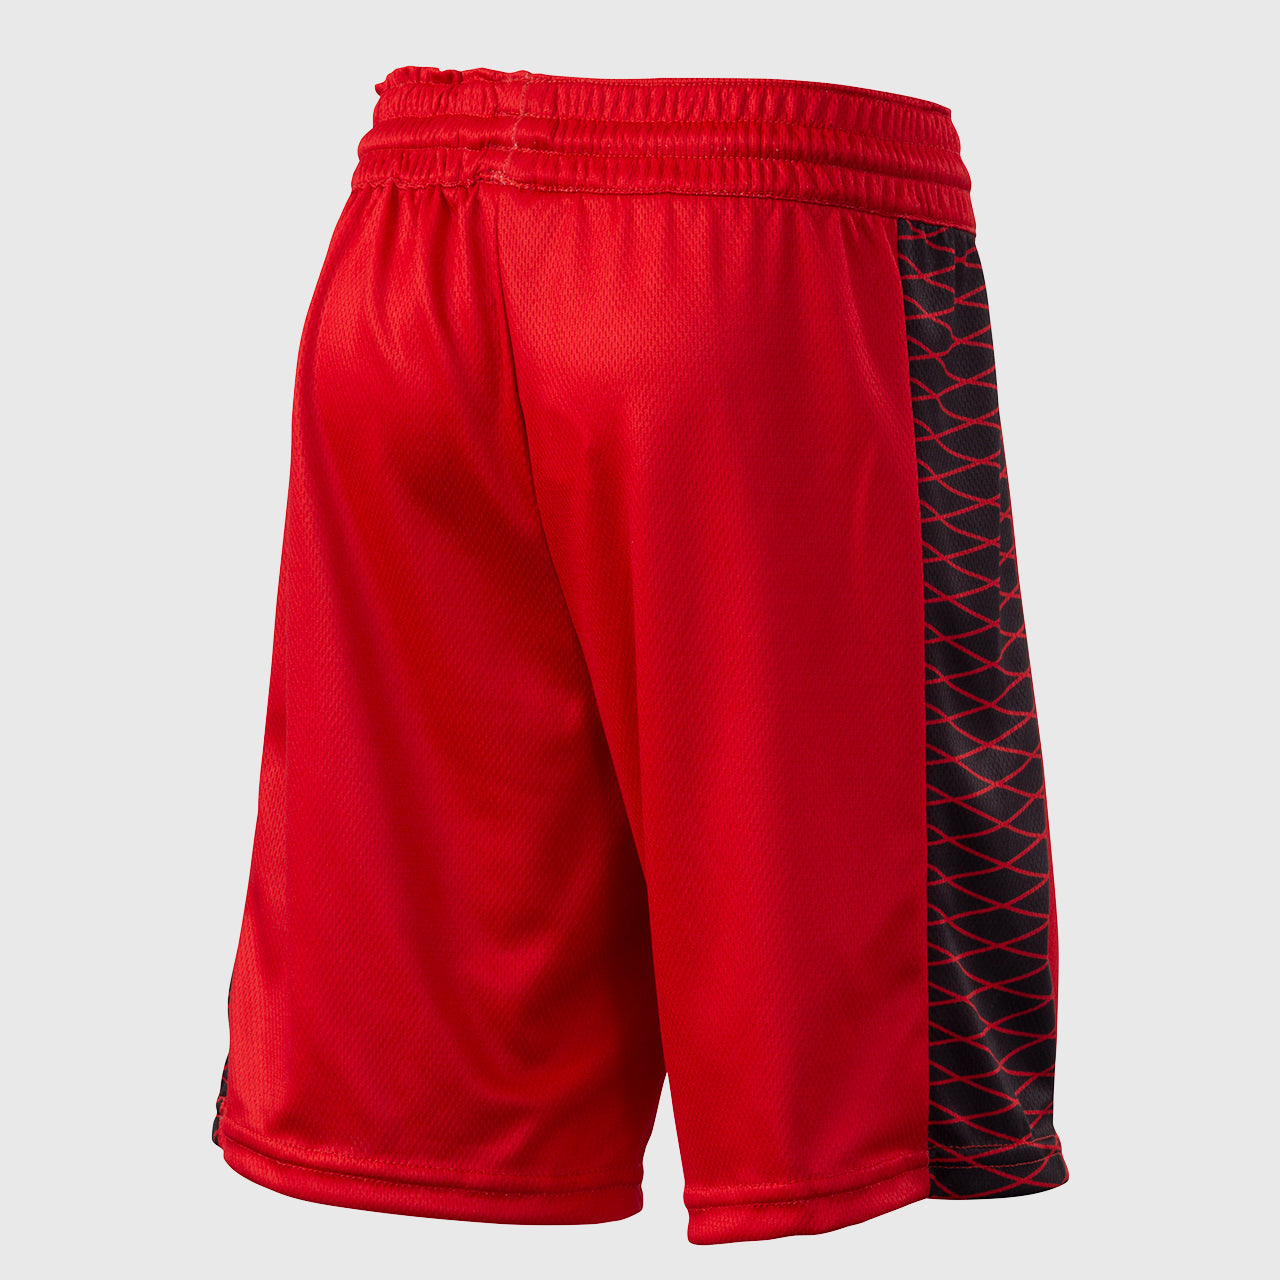 Perth Wildcats 18/19 Youth Authentic Shorts